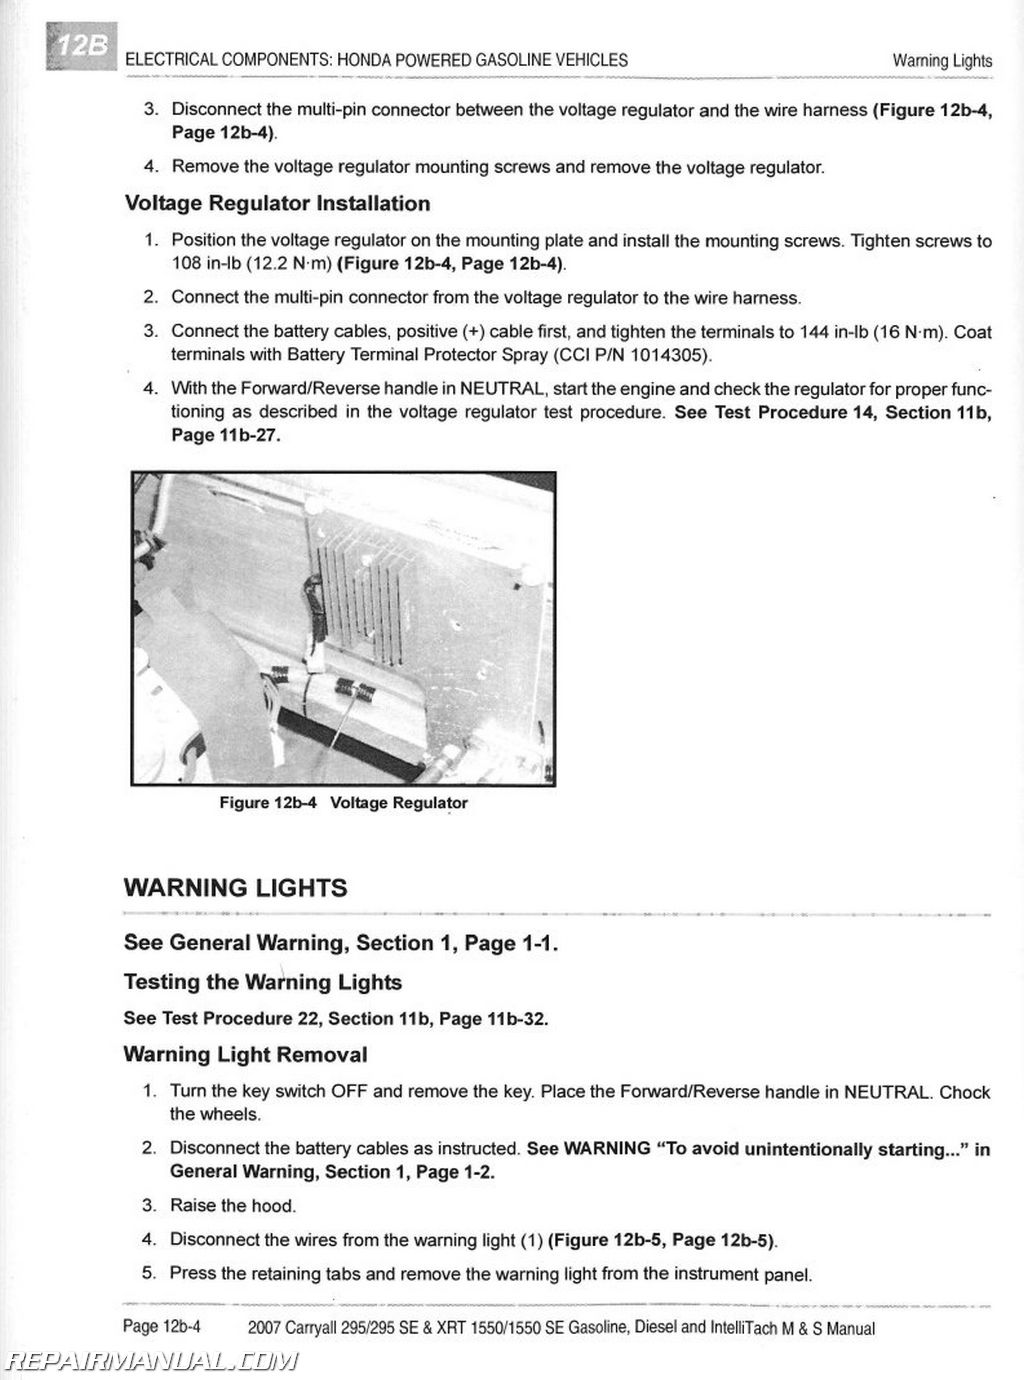 Club Car Wiring Diagram 2004 2007 Club Car Precedent On 2006 Club Car